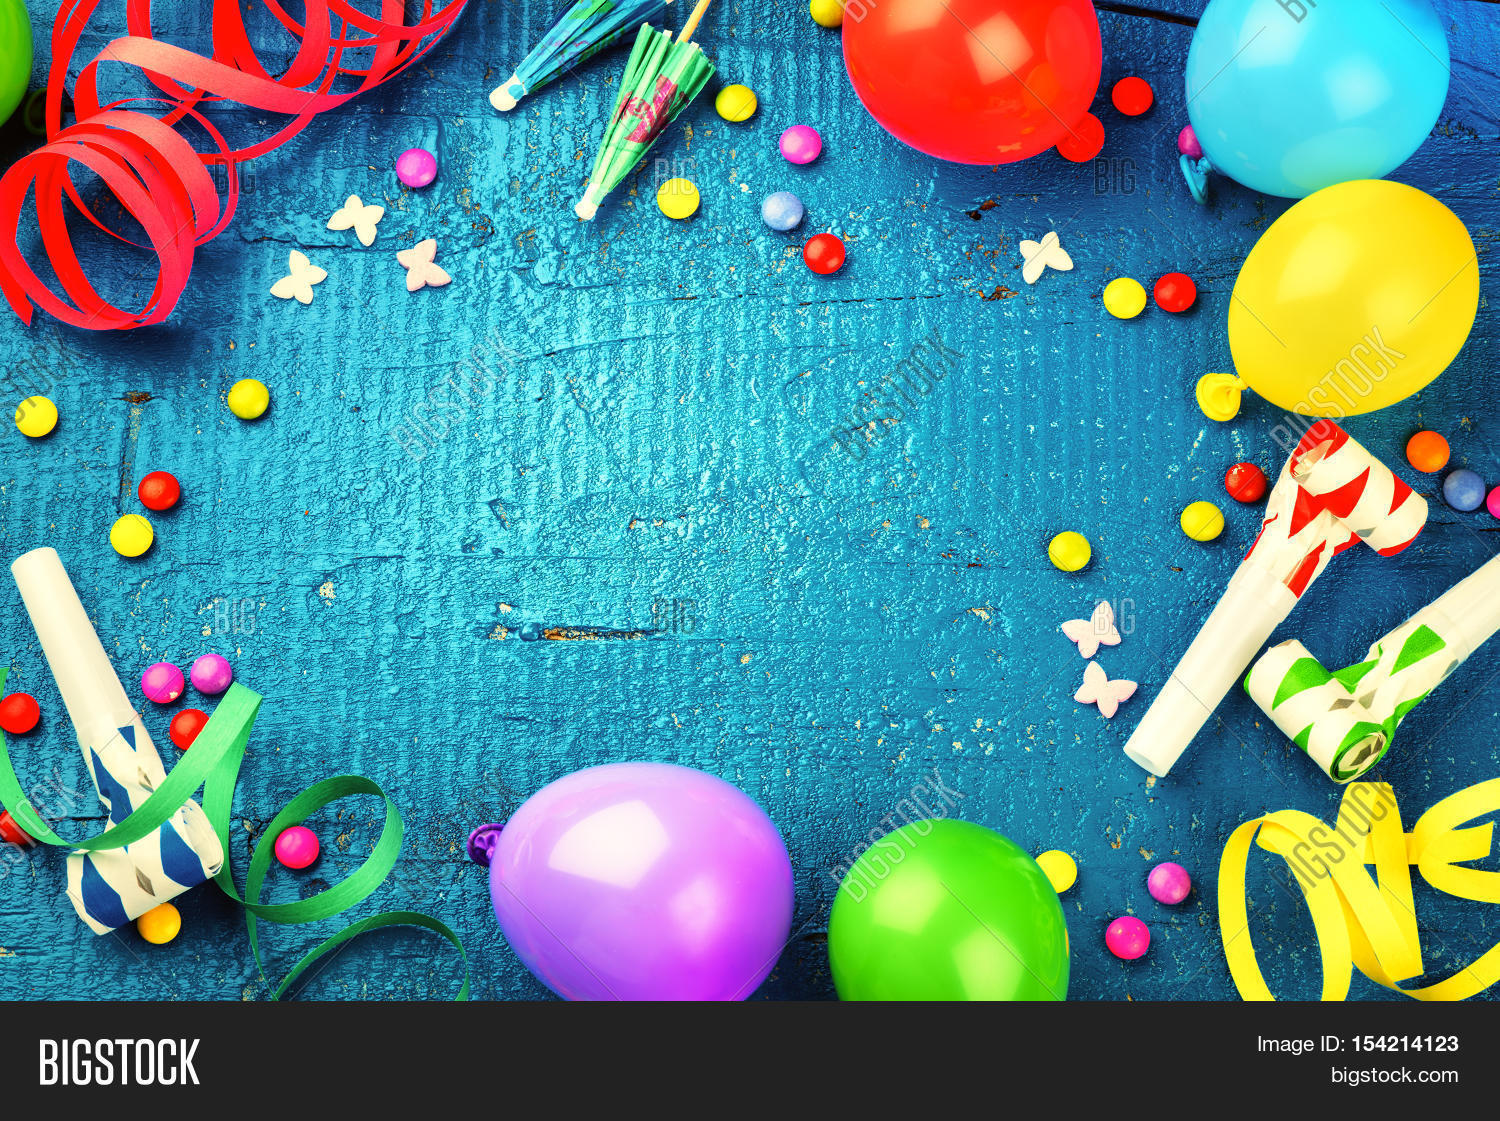 Colorful Birthday Image & Photo (Free Trial) | Bigstock